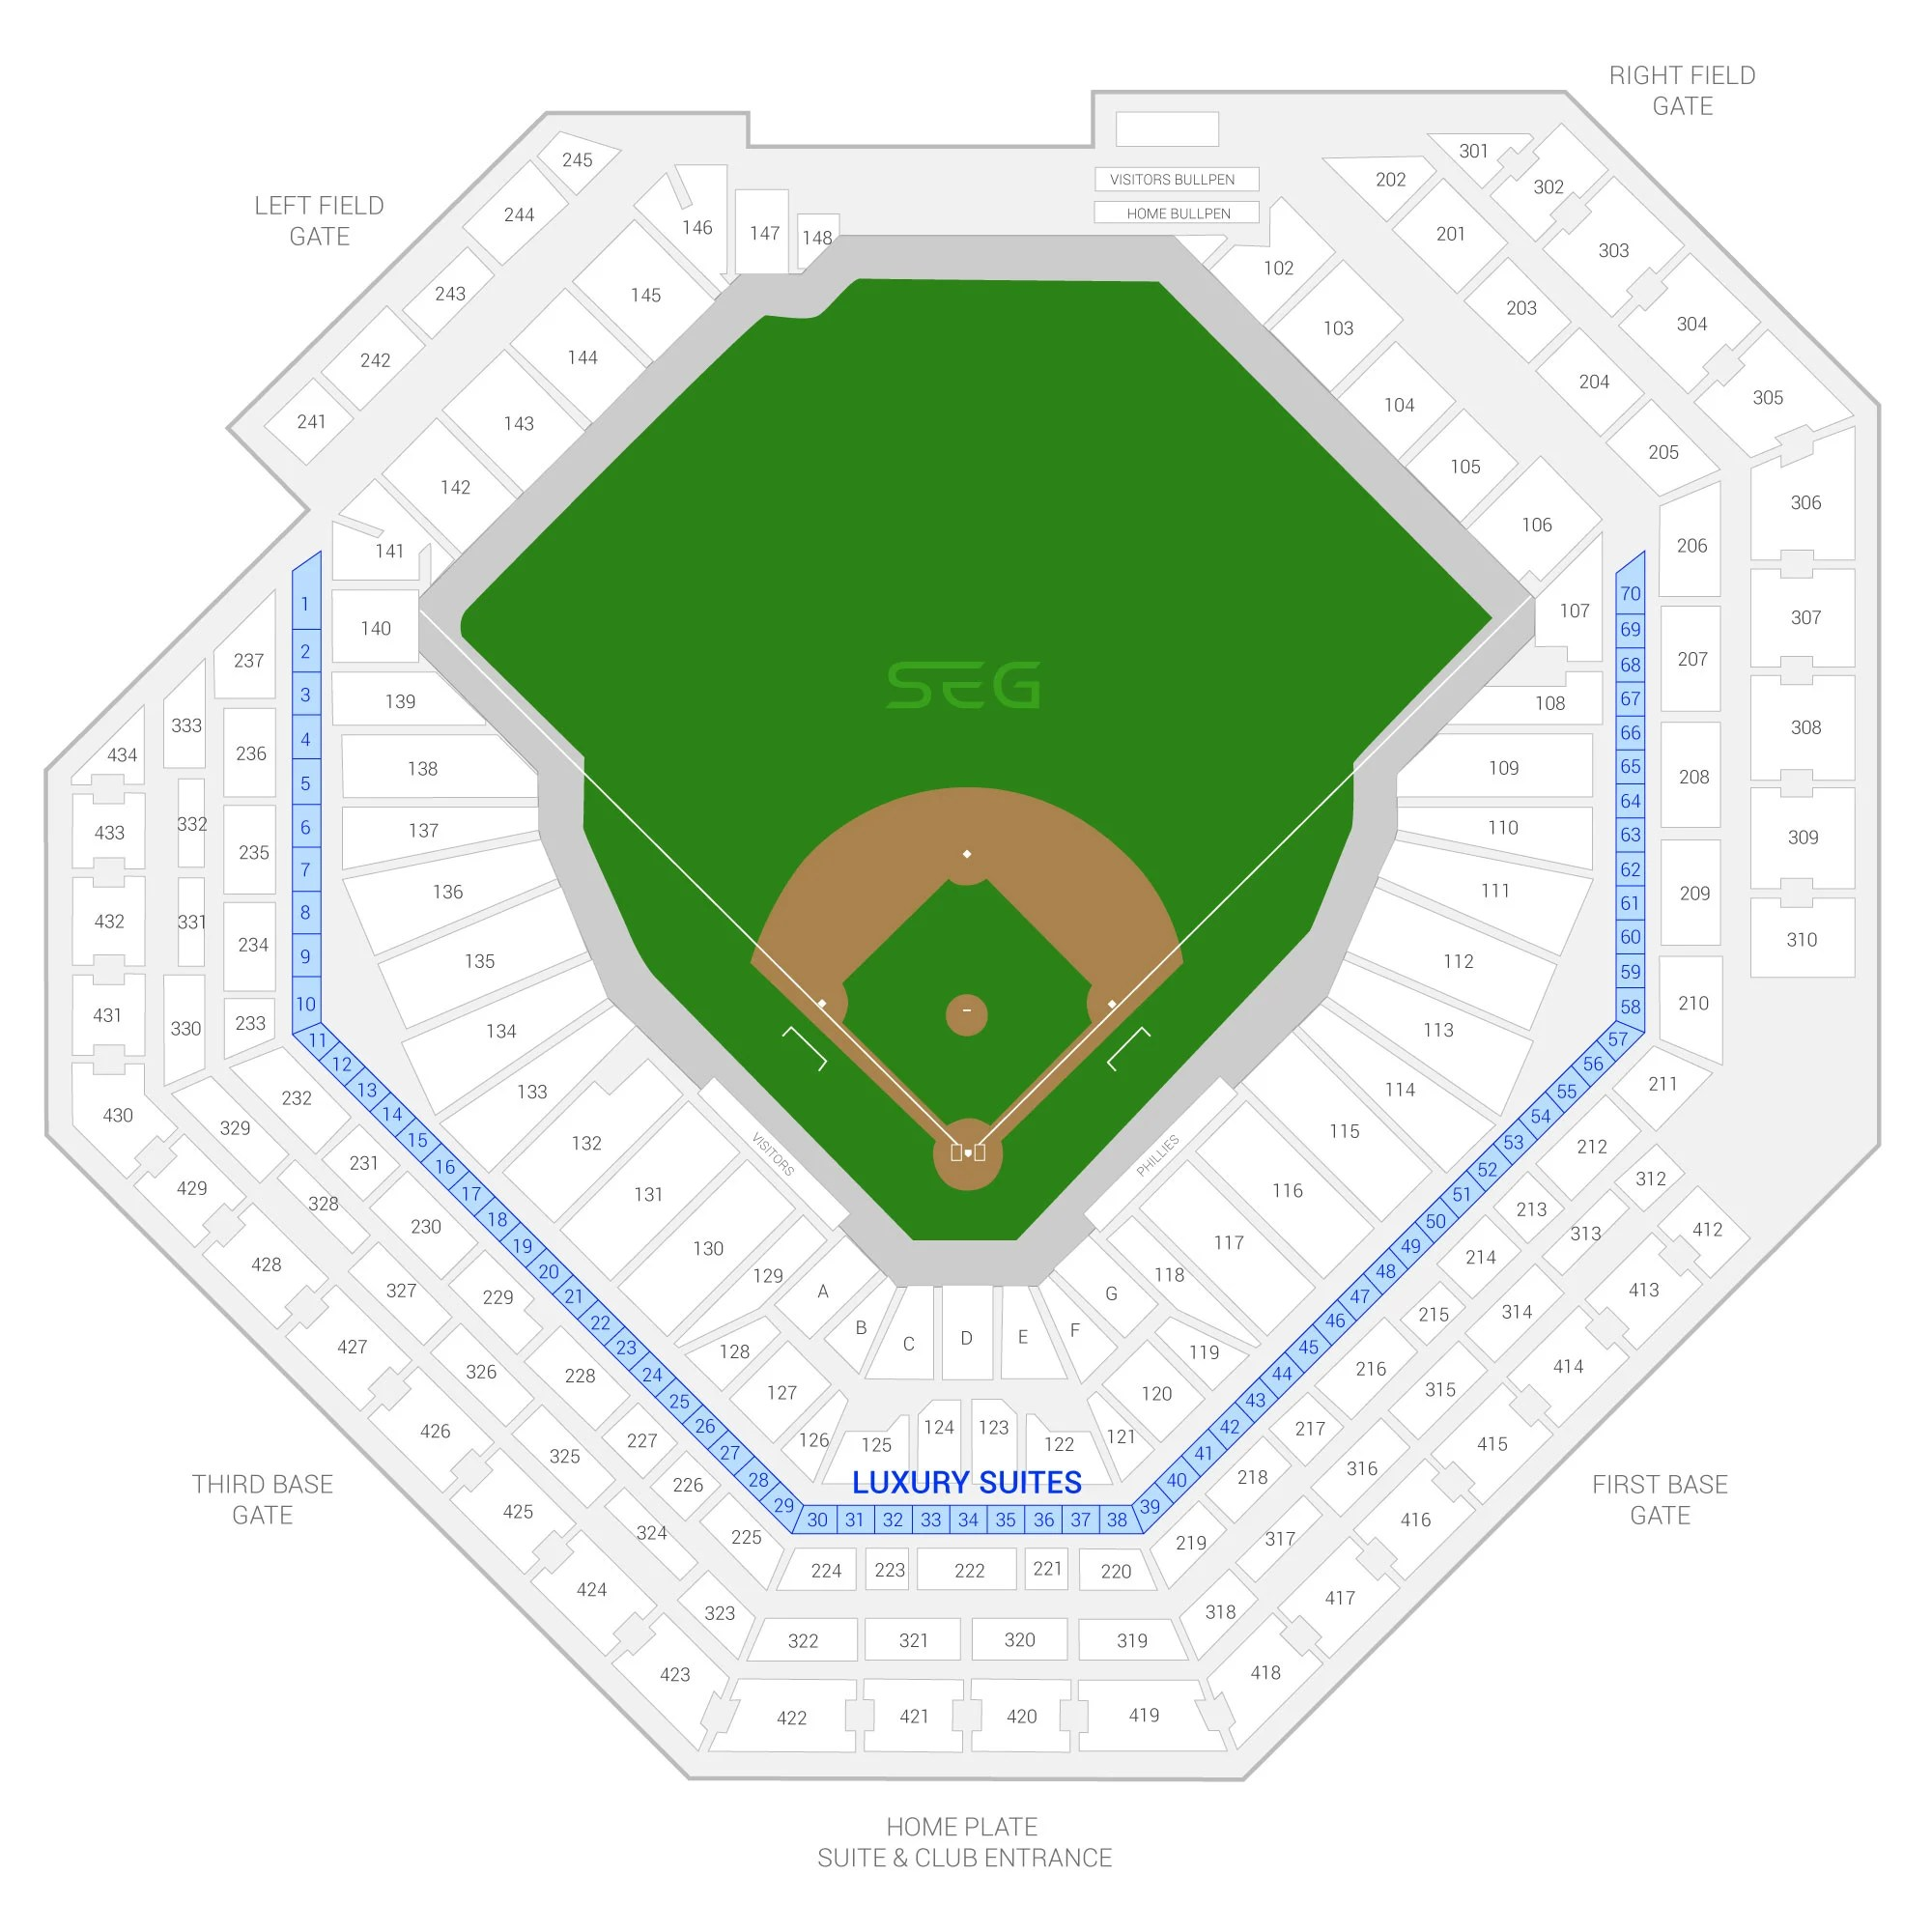 chase field suite seating chart. Black Bedroom Furniture Sets. Home Design Ideas